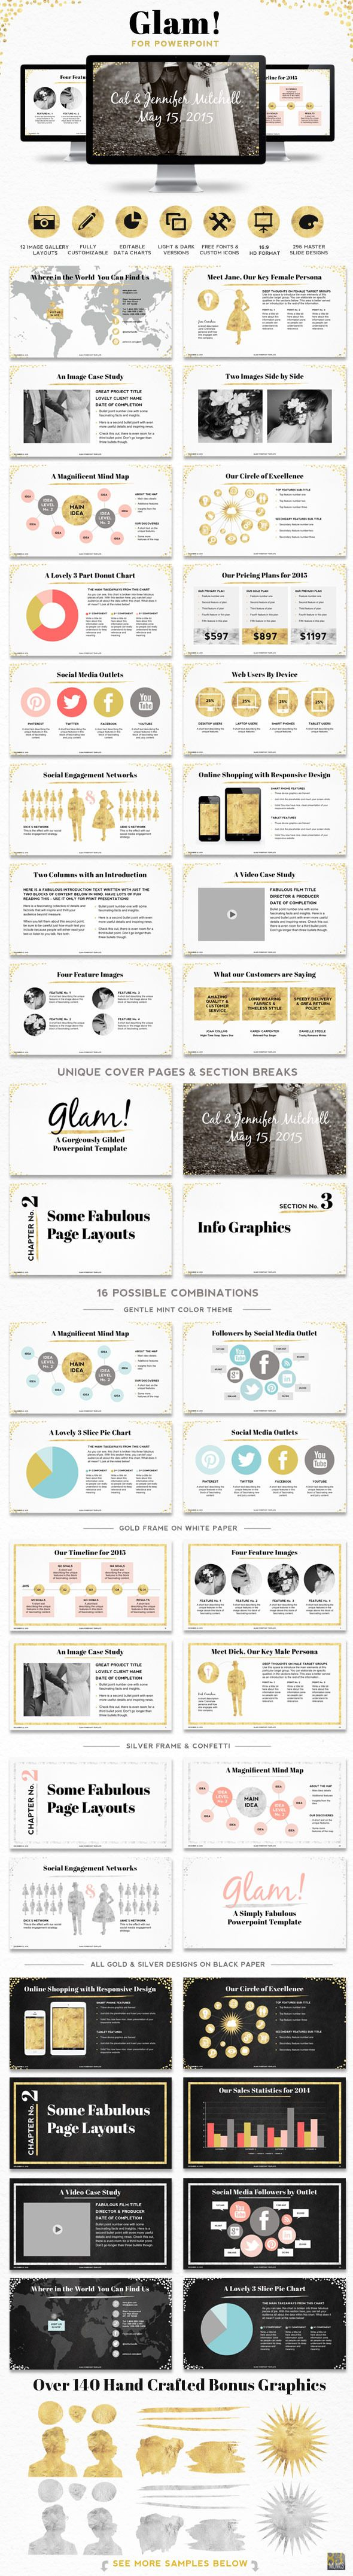 Glam powerpoint presentation template powerpoint presentation powerpoint presentation template with 296 hand styled high definition master slides this collection of ppt templates have been specifically designed with ccuart Gallery